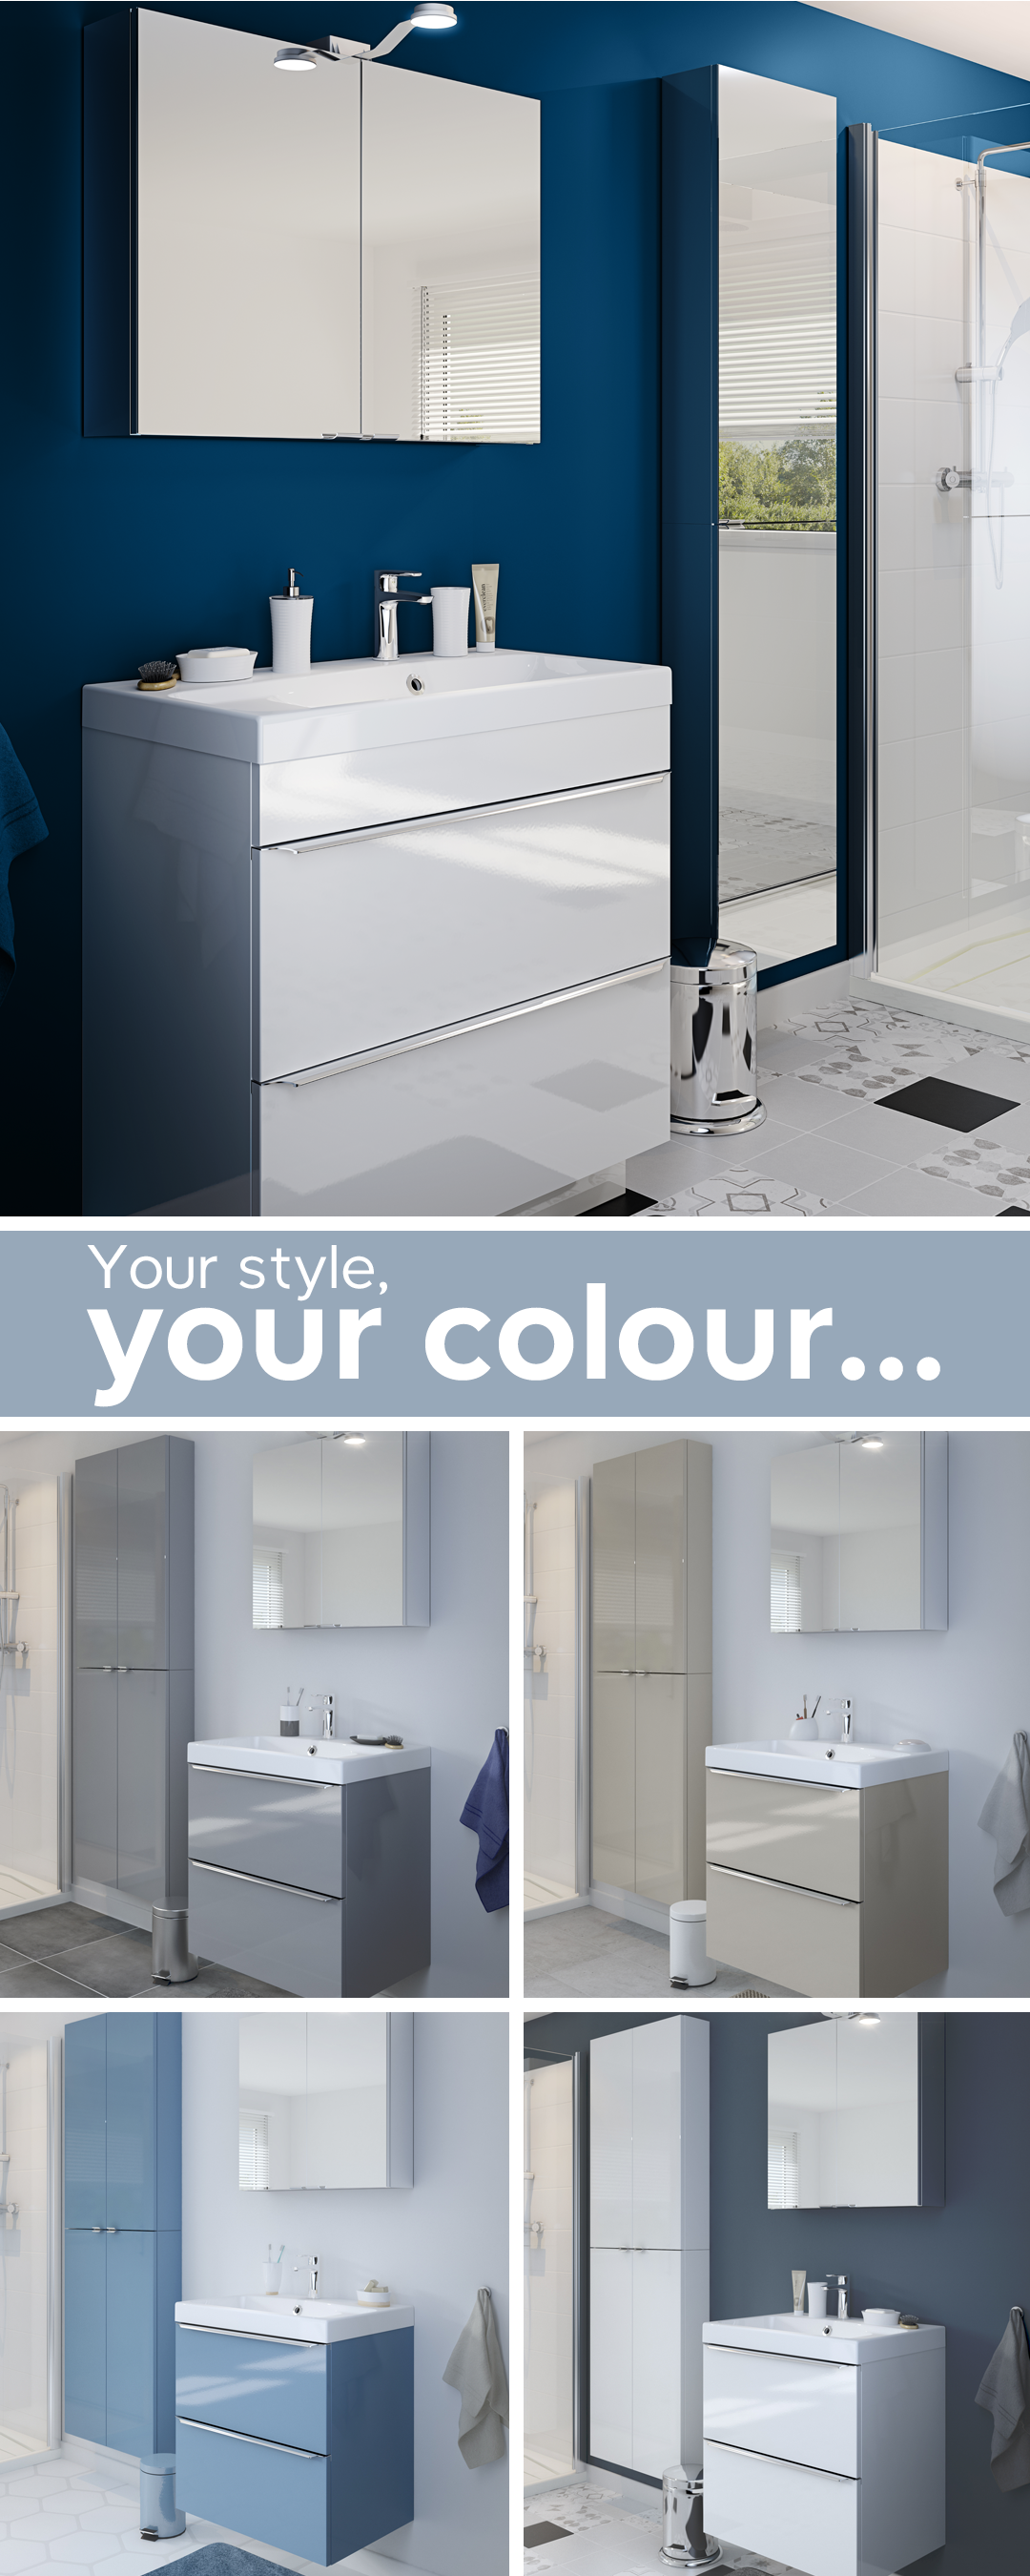 Design Your Own Bathroom Online Wish You Could See What This Would Look Like In Your Home Use Our